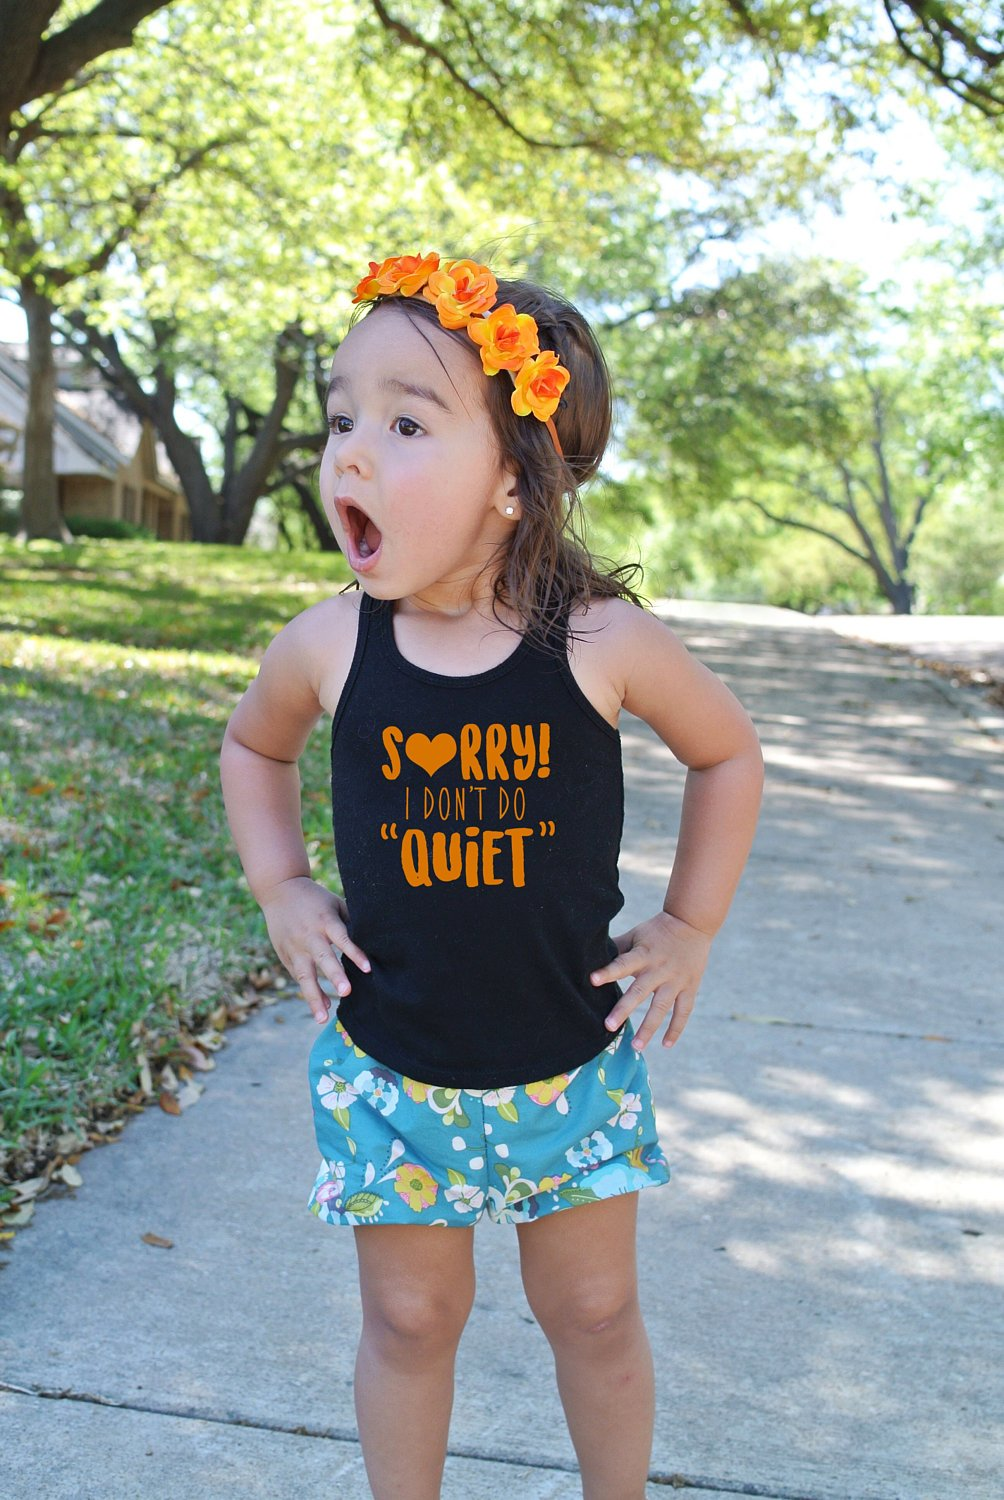 Sorry I Don't Do Quiet Tank Top -- Chatterbox Black Tank Orange, Pink, Yellow, or White - Girls, Toddler, Summer Shirt--Talkative kids, Tee